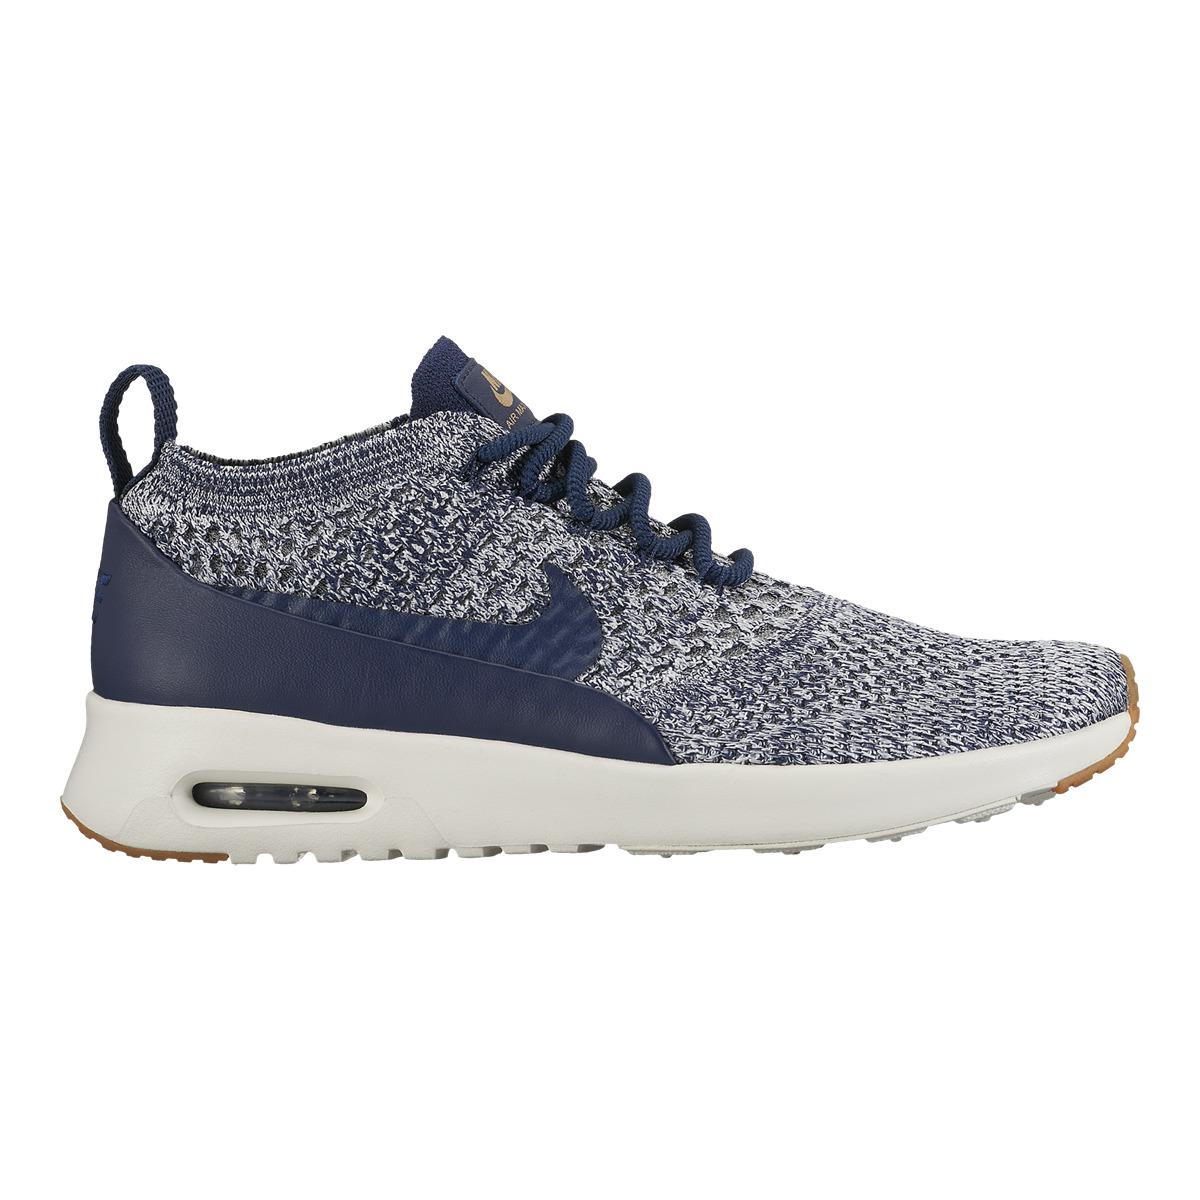 lyst nike air max thea ultra flyknit casual trainers in. Black Bedroom Furniture Sets. Home Design Ideas